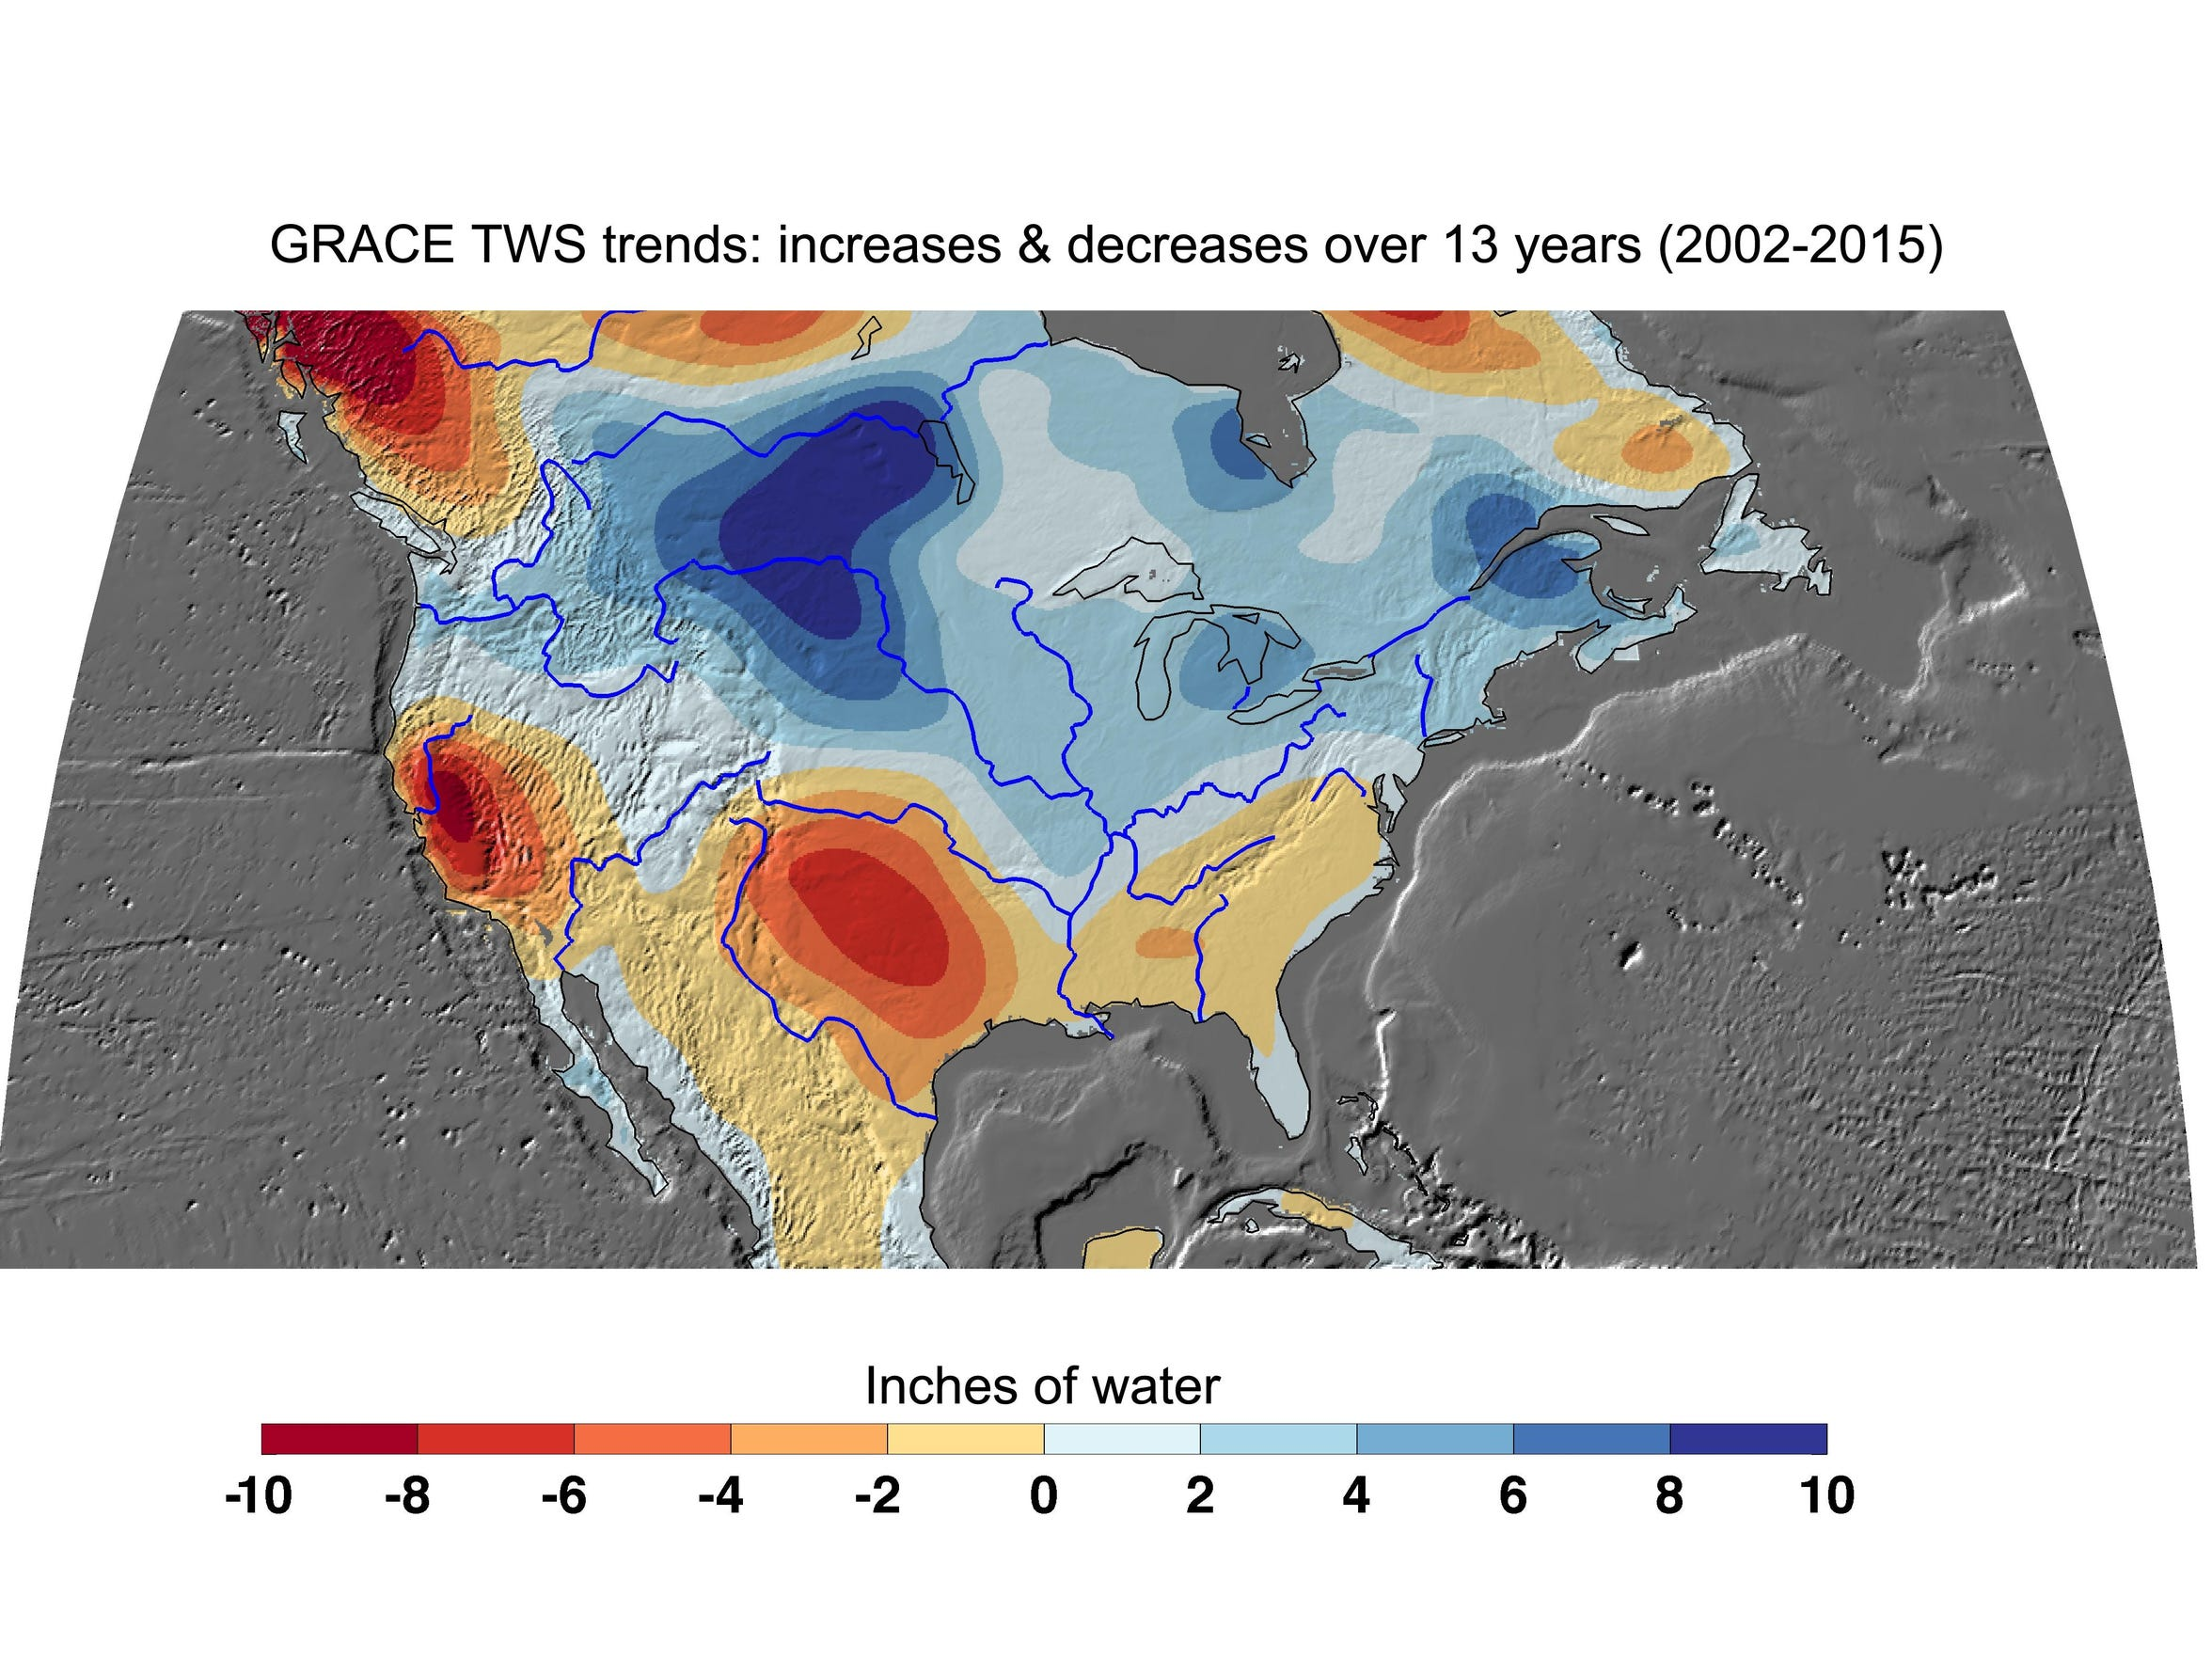 NASA's GRACE satellites have measured losses of freshwater across much of the western and southern United States. This map provided by NASA's Jet Propulsion Laboratory shows cumulative total freshwater losses in the country from 2002 to 2015. Much of the northern half of the country had an increase in total water storage during this period. Areas where groundwater depletion had a major effect included California's Central Valley and the southern High Plains Aquifer.